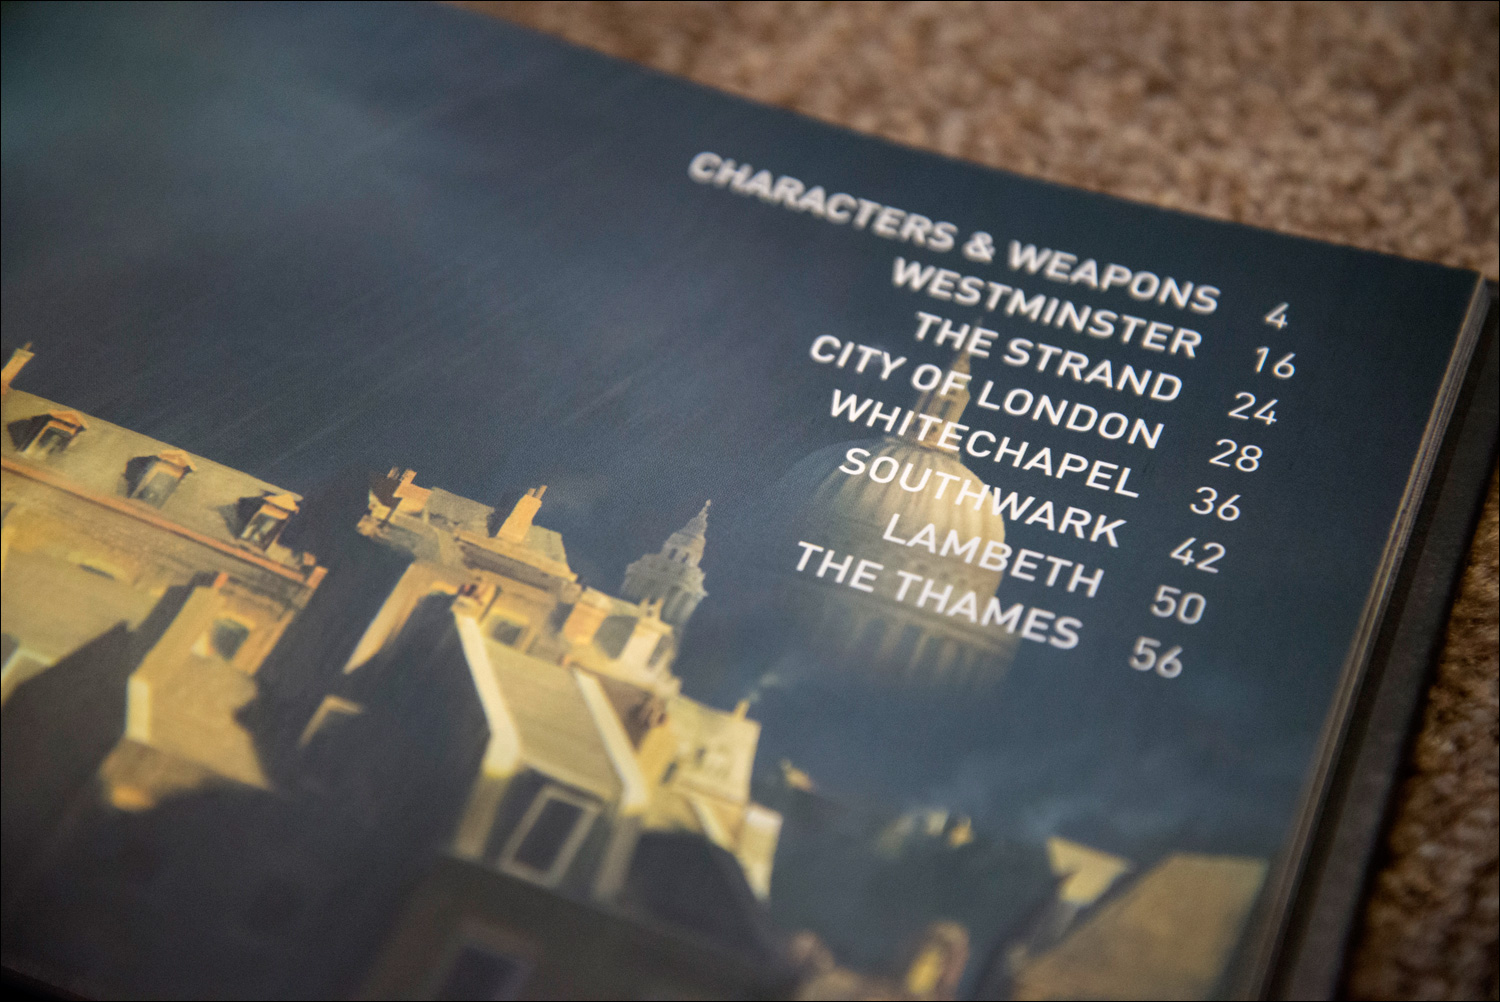 Assassins-Creed-Syndicate-Rooks-Edition-Artbook-Contents